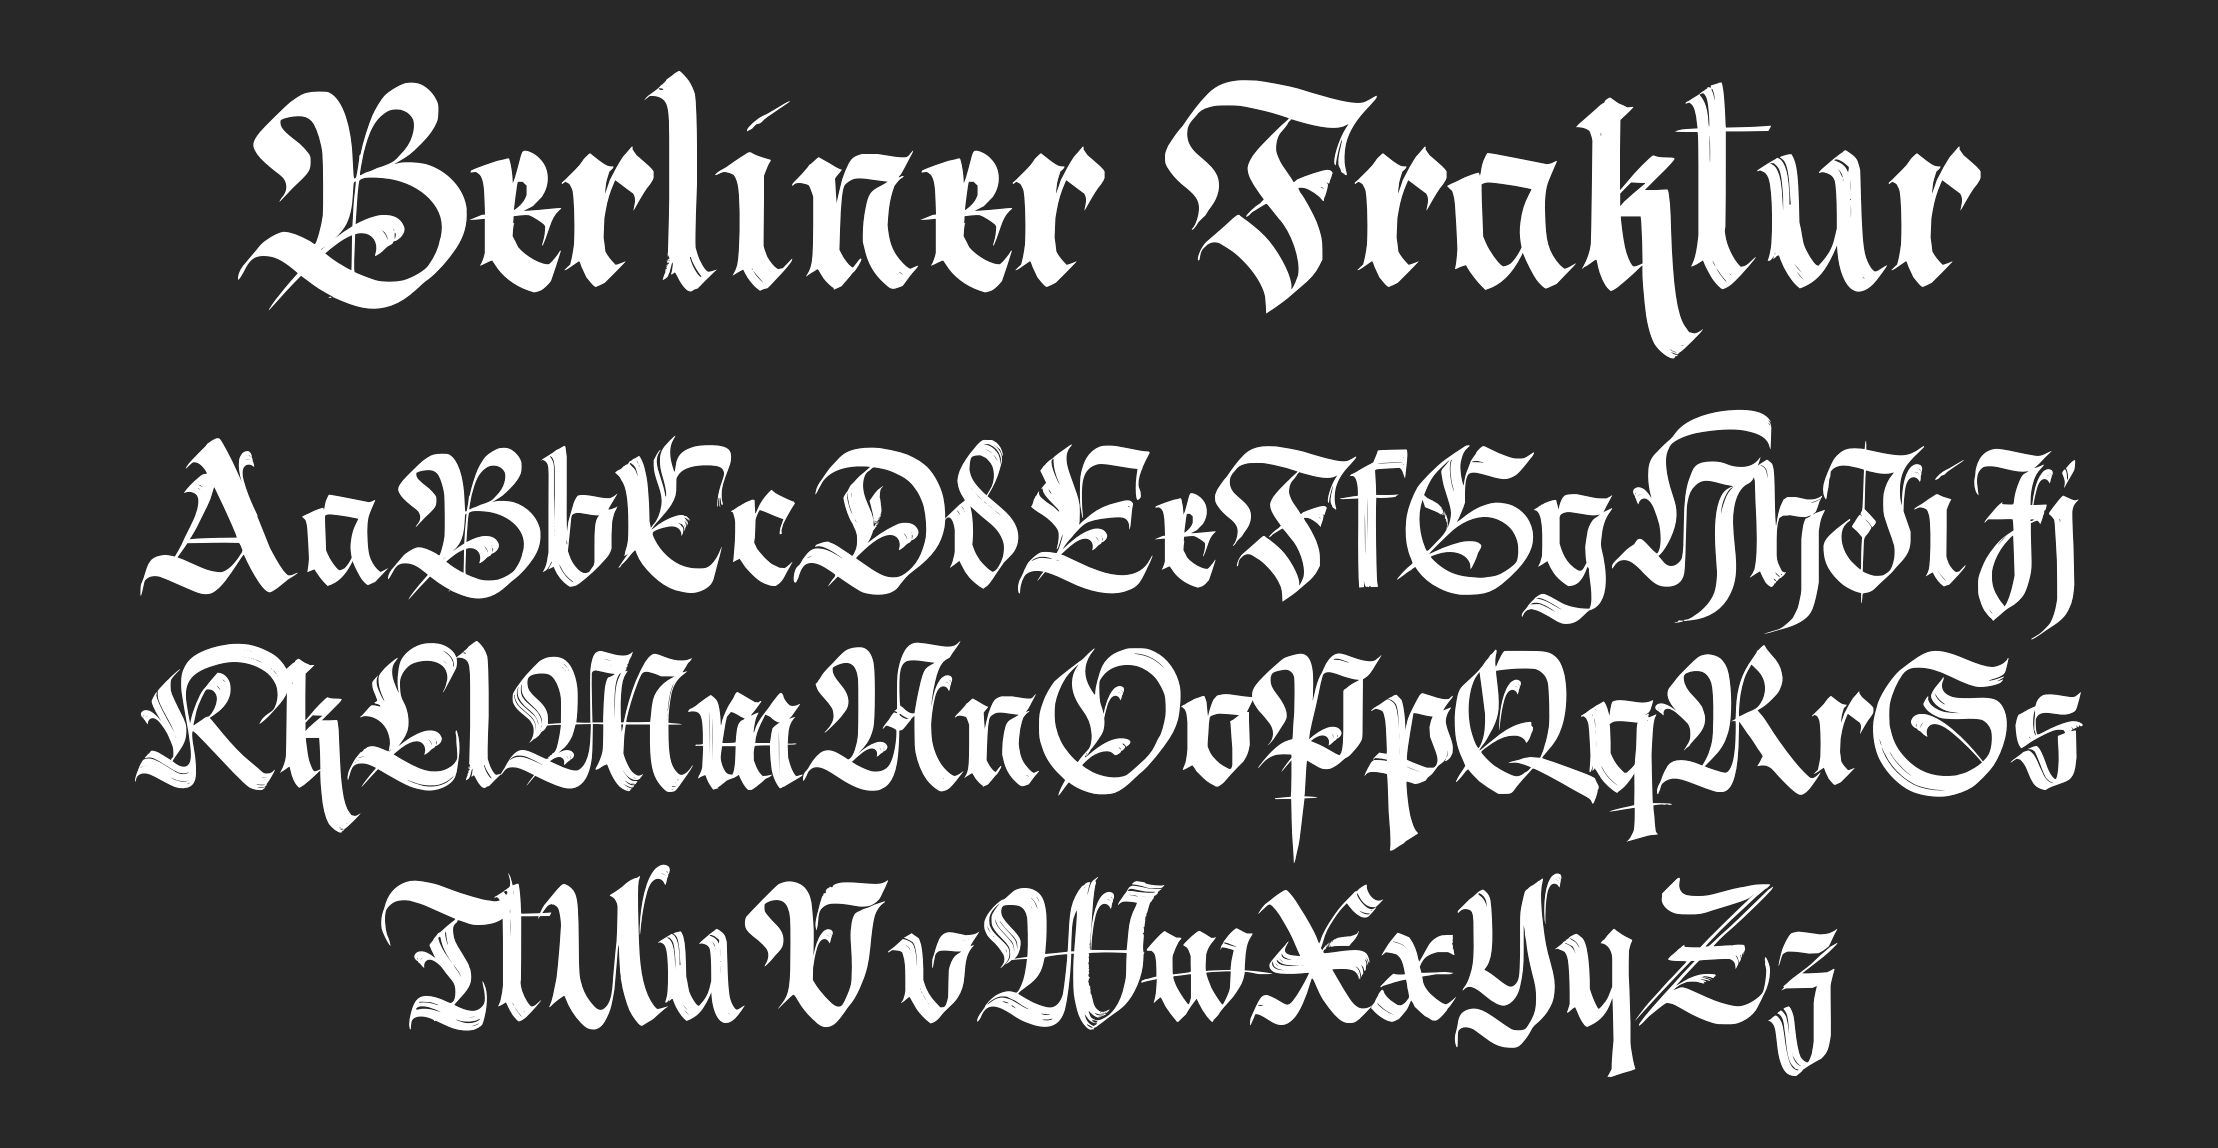 fraktur handwriting